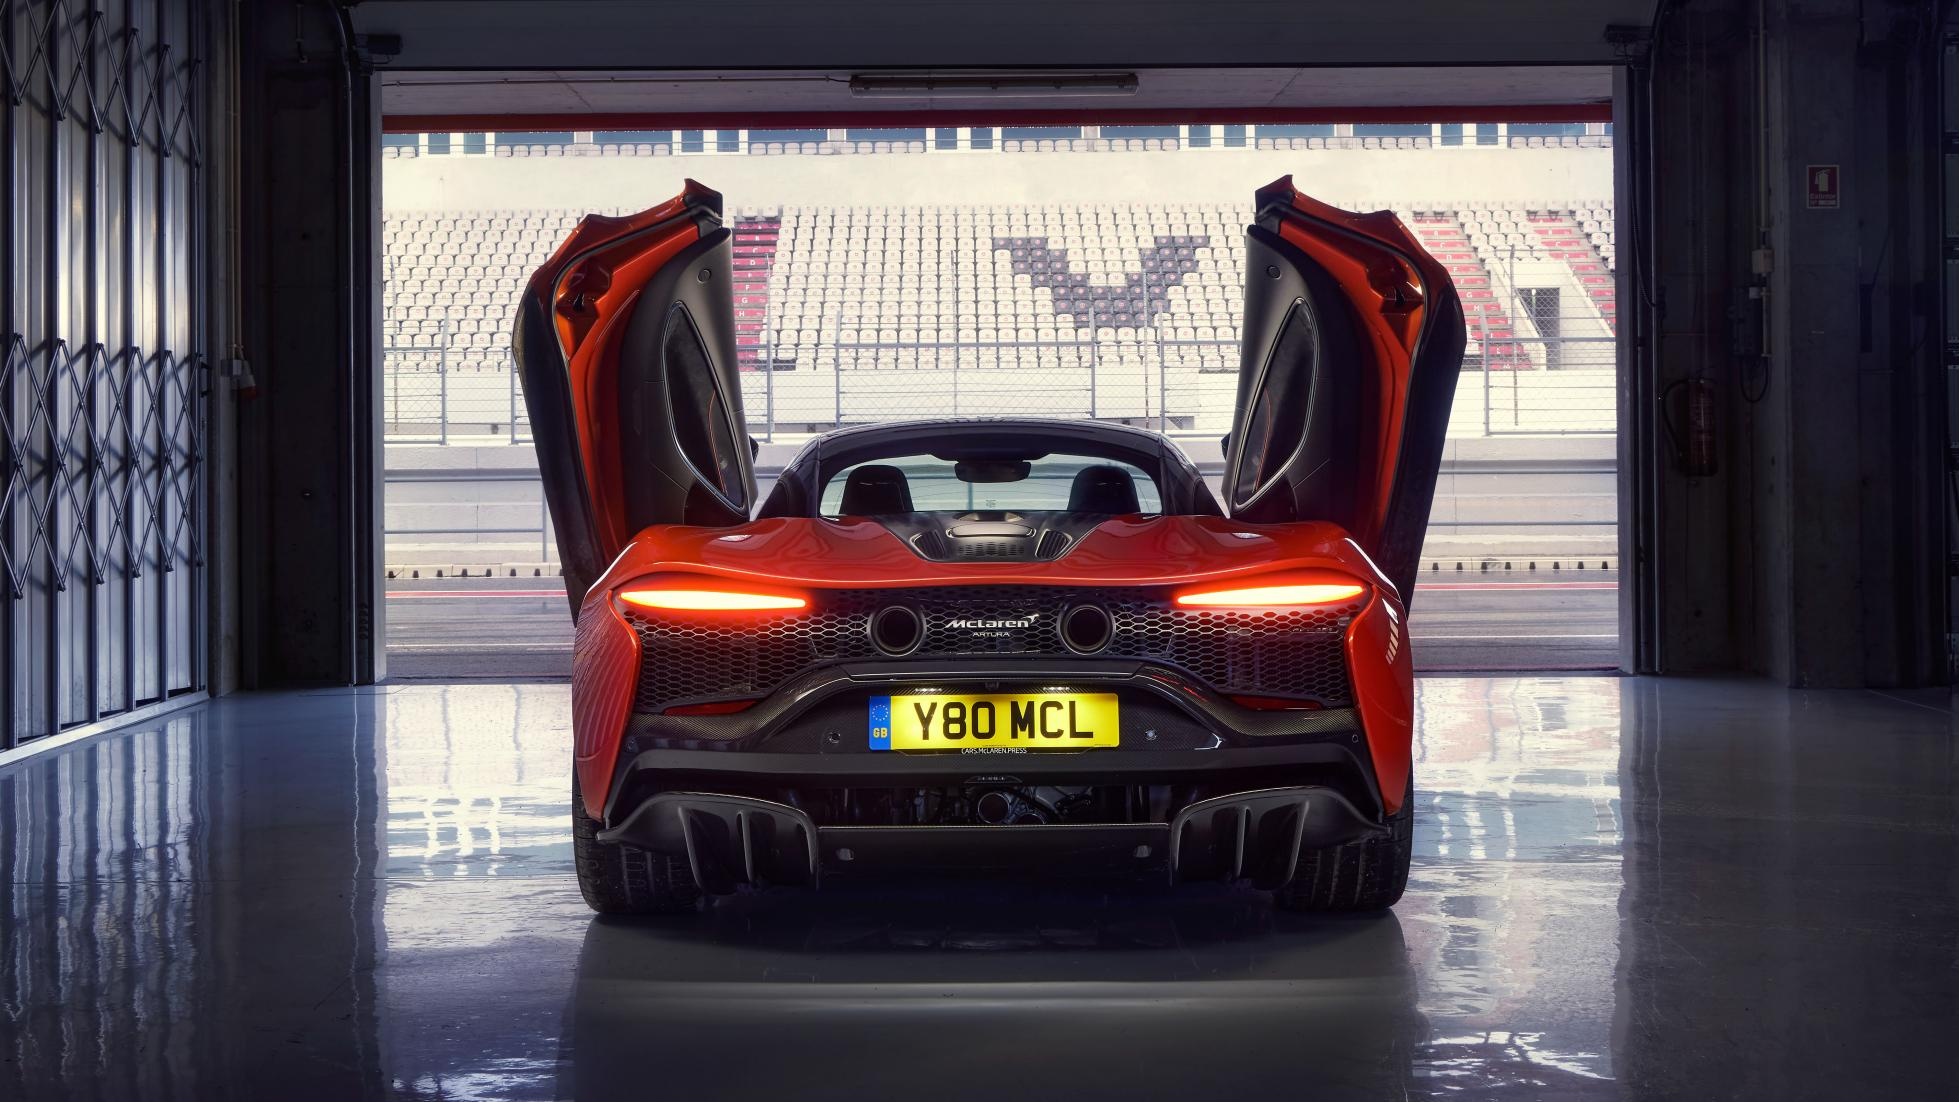 McLaren Artura rear view doors open